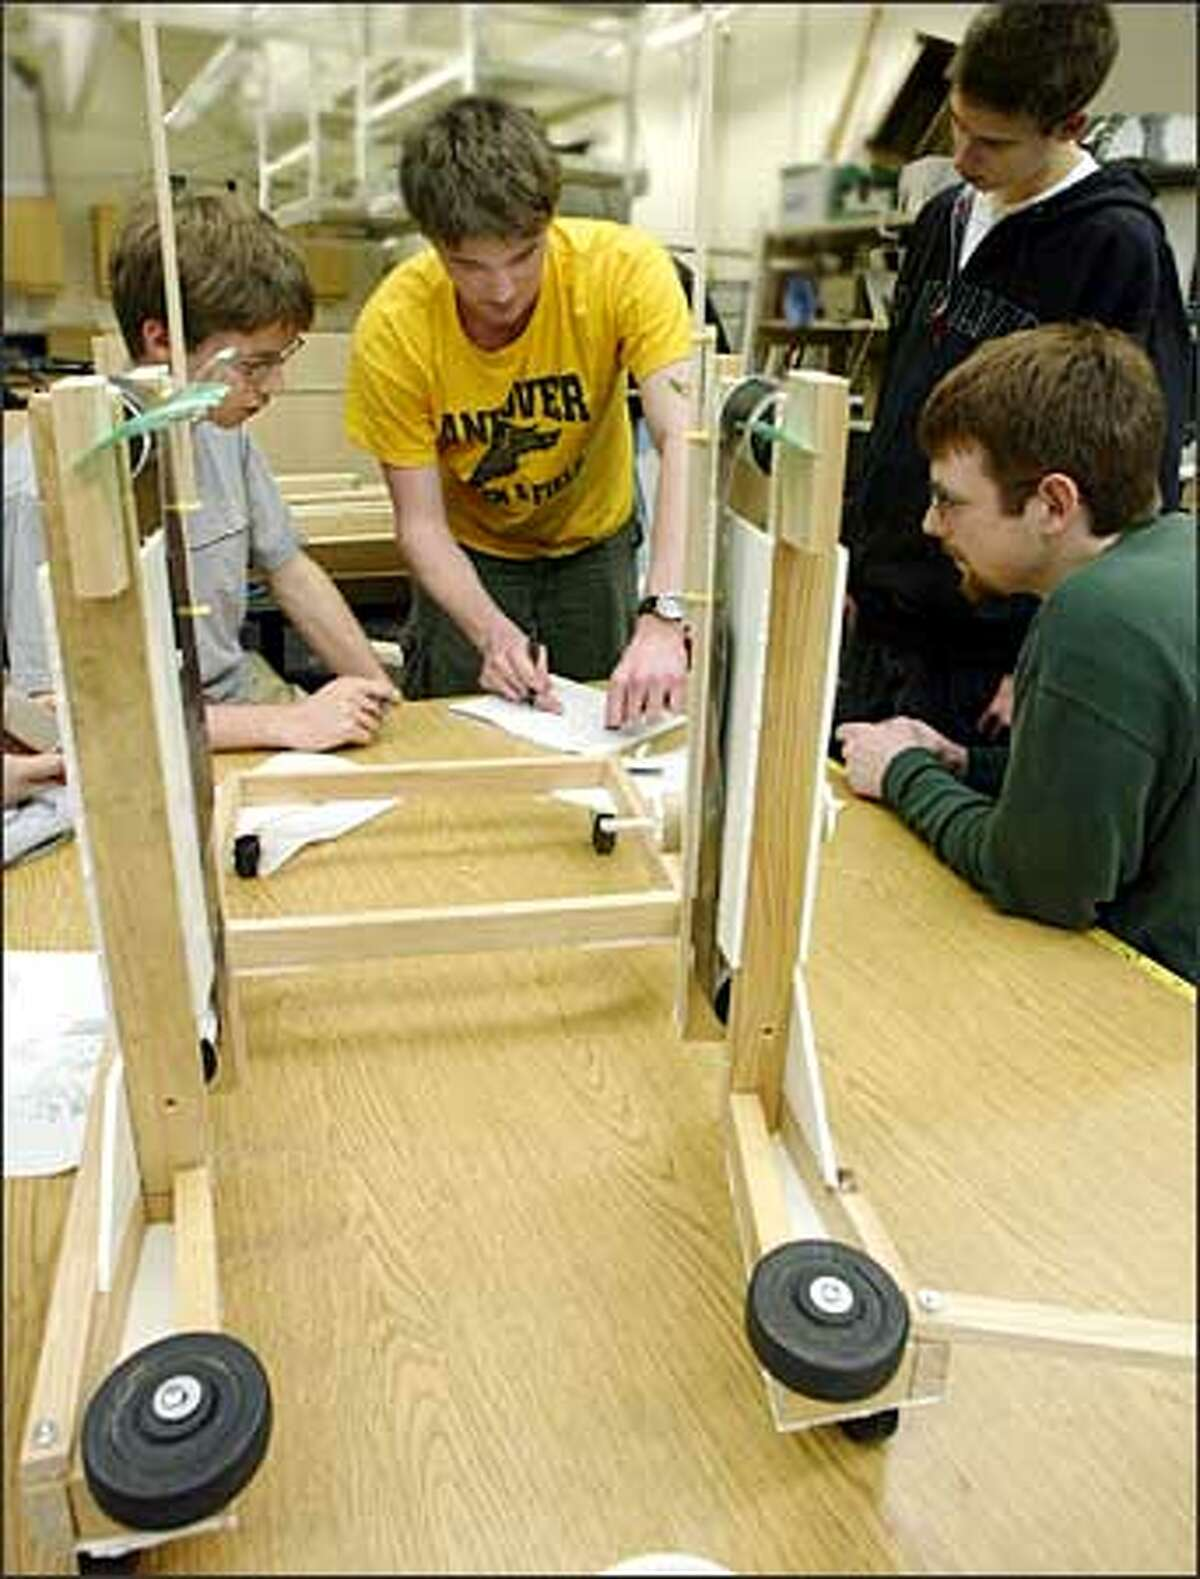 Roosevelt student Nik Krumm, left, works with UW electrical engineering students Ryan Domigan, Tristan Burch and Eric Hungerford.